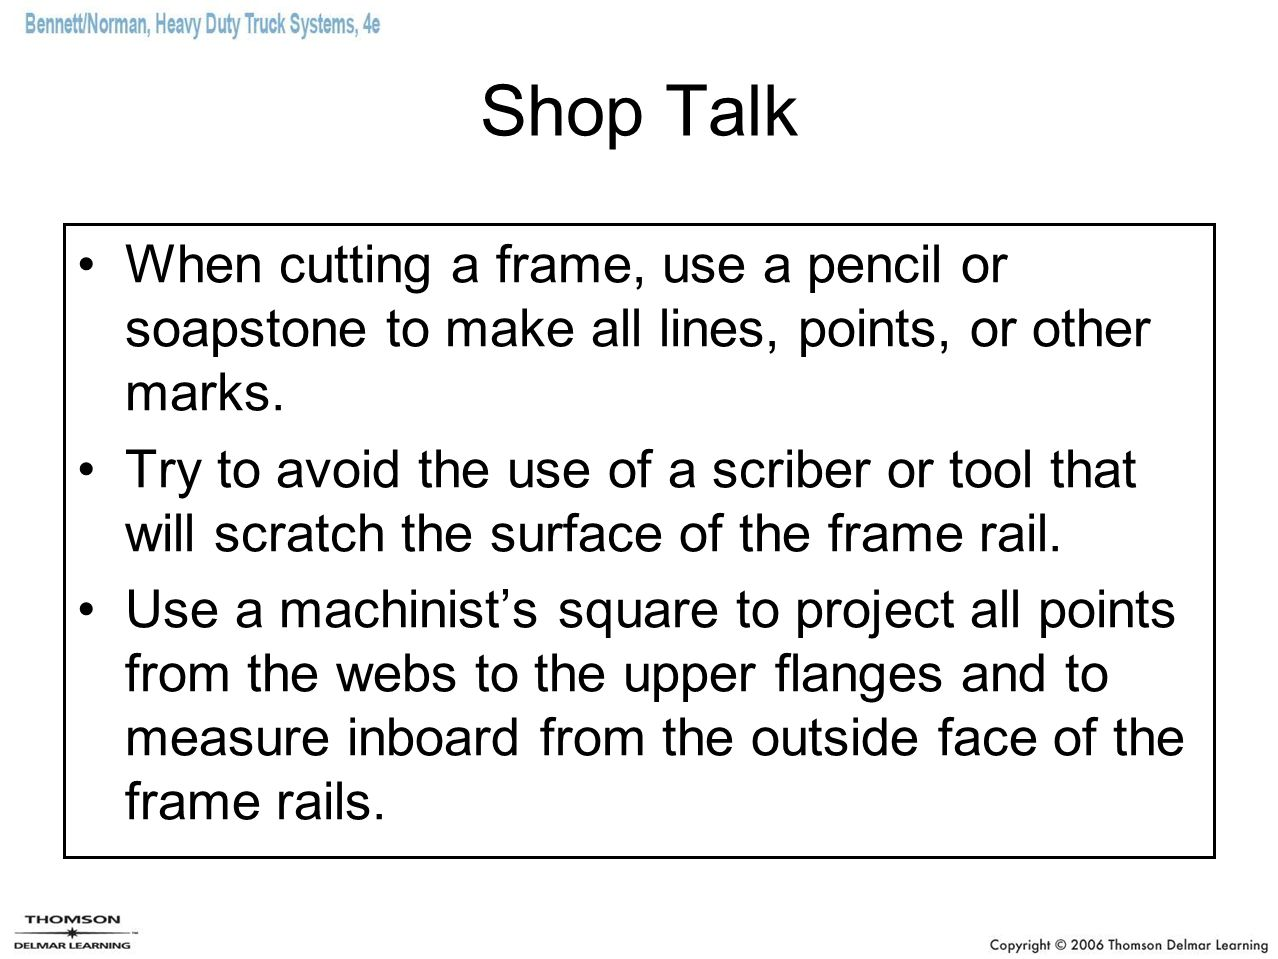 Shop Talk When cutting a frame, use a pencil or soapstone to make all lines, points, or other marks.